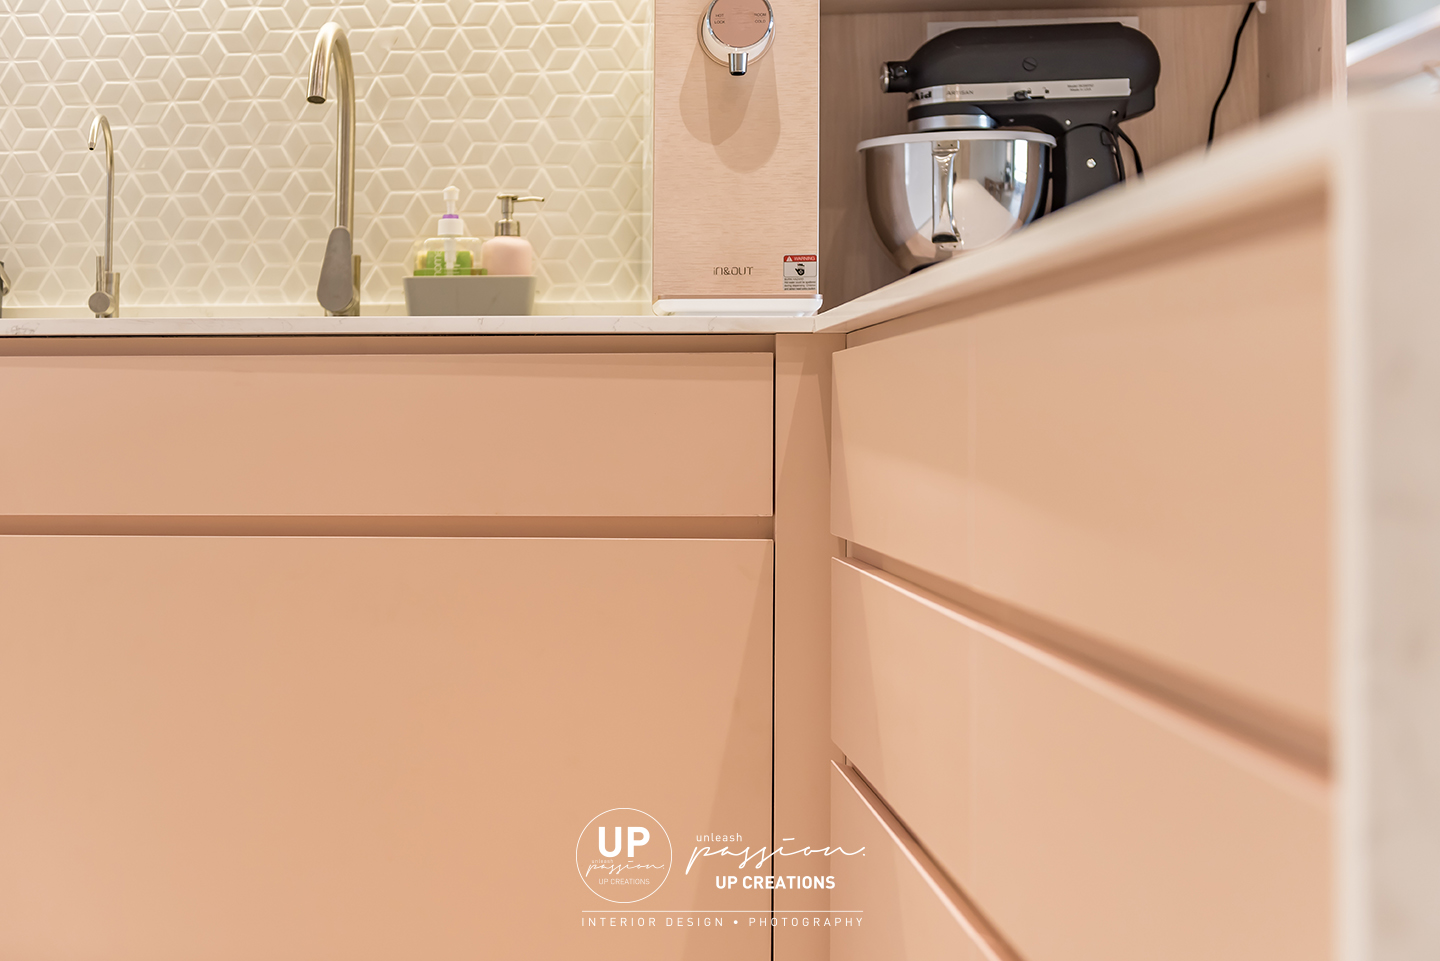 Mont Kiara Pines condo kitchen bottom cabinet in pastel pink color